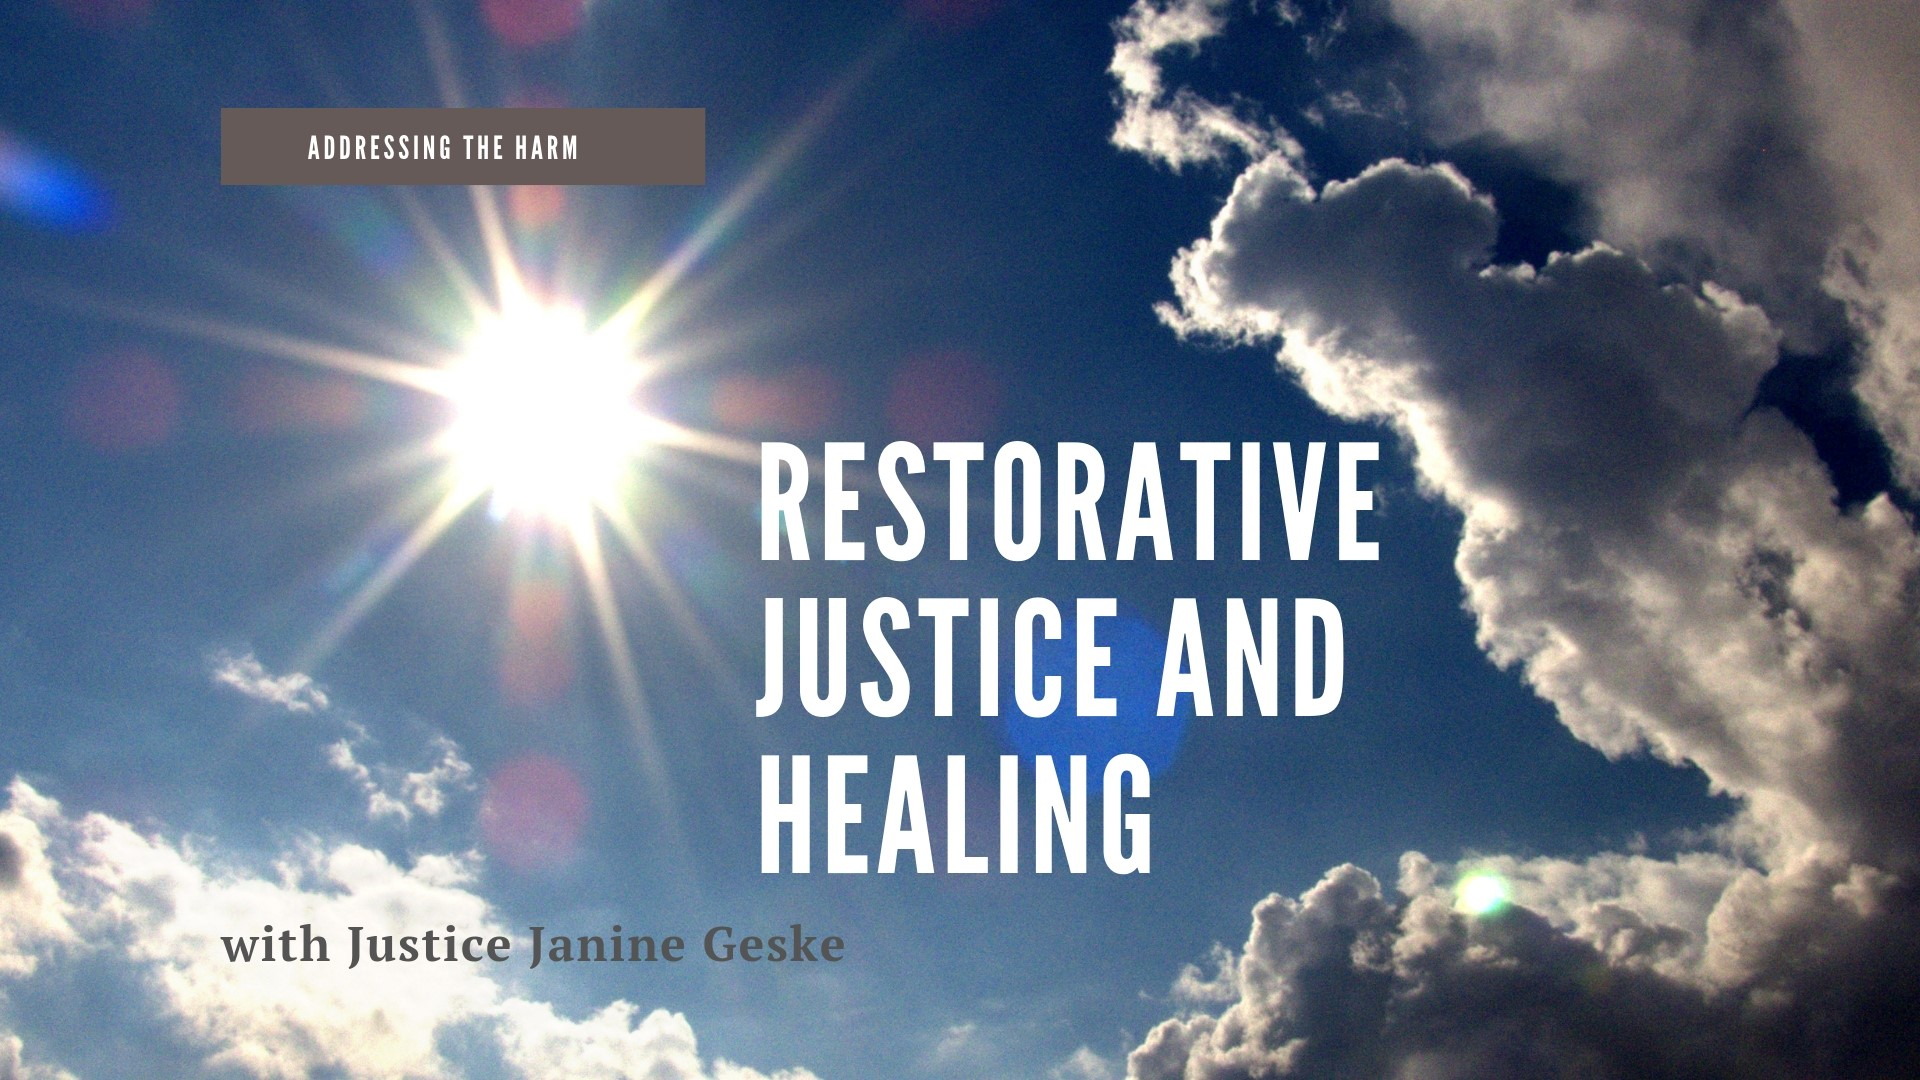 Restorative Justice and Healing promo